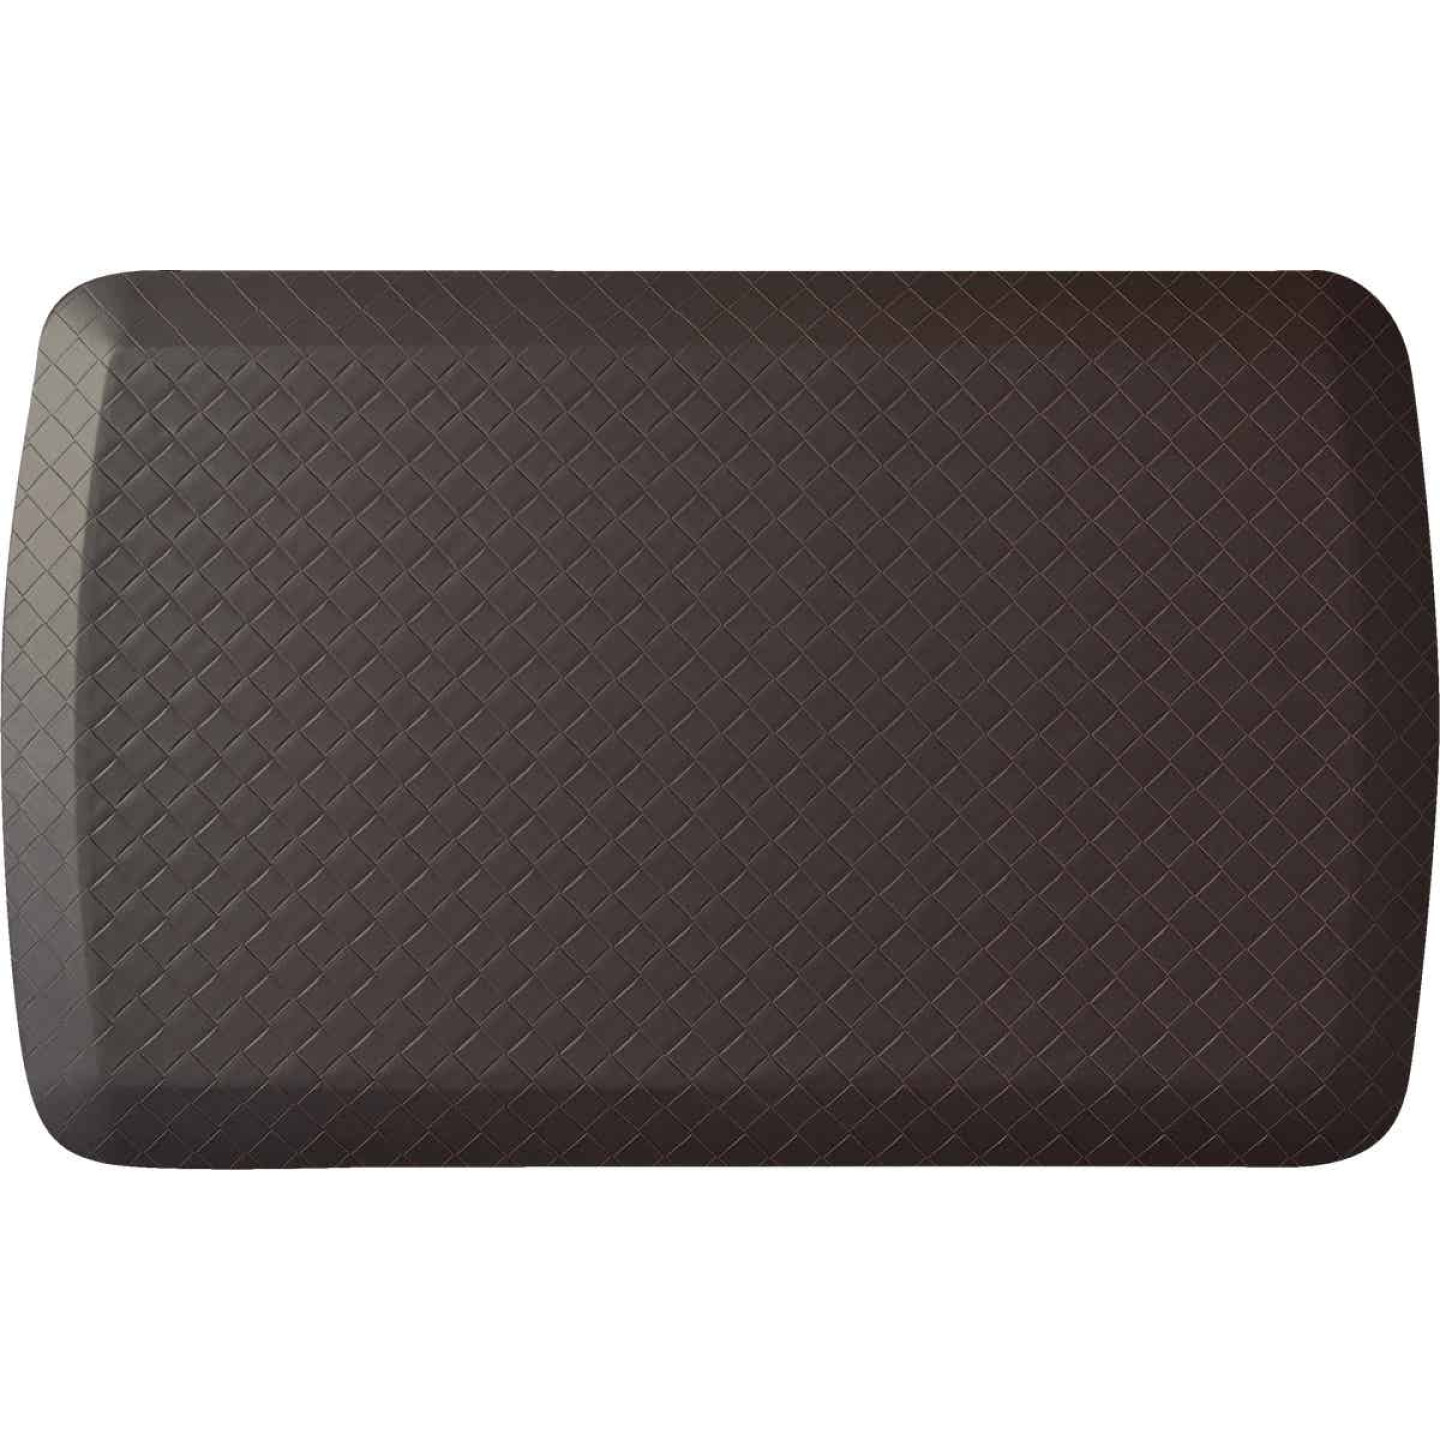 GelPro Basics 20 In. x 32 In. Truffle Basketweave Comfort Anti-Fatigue Mat Image 1